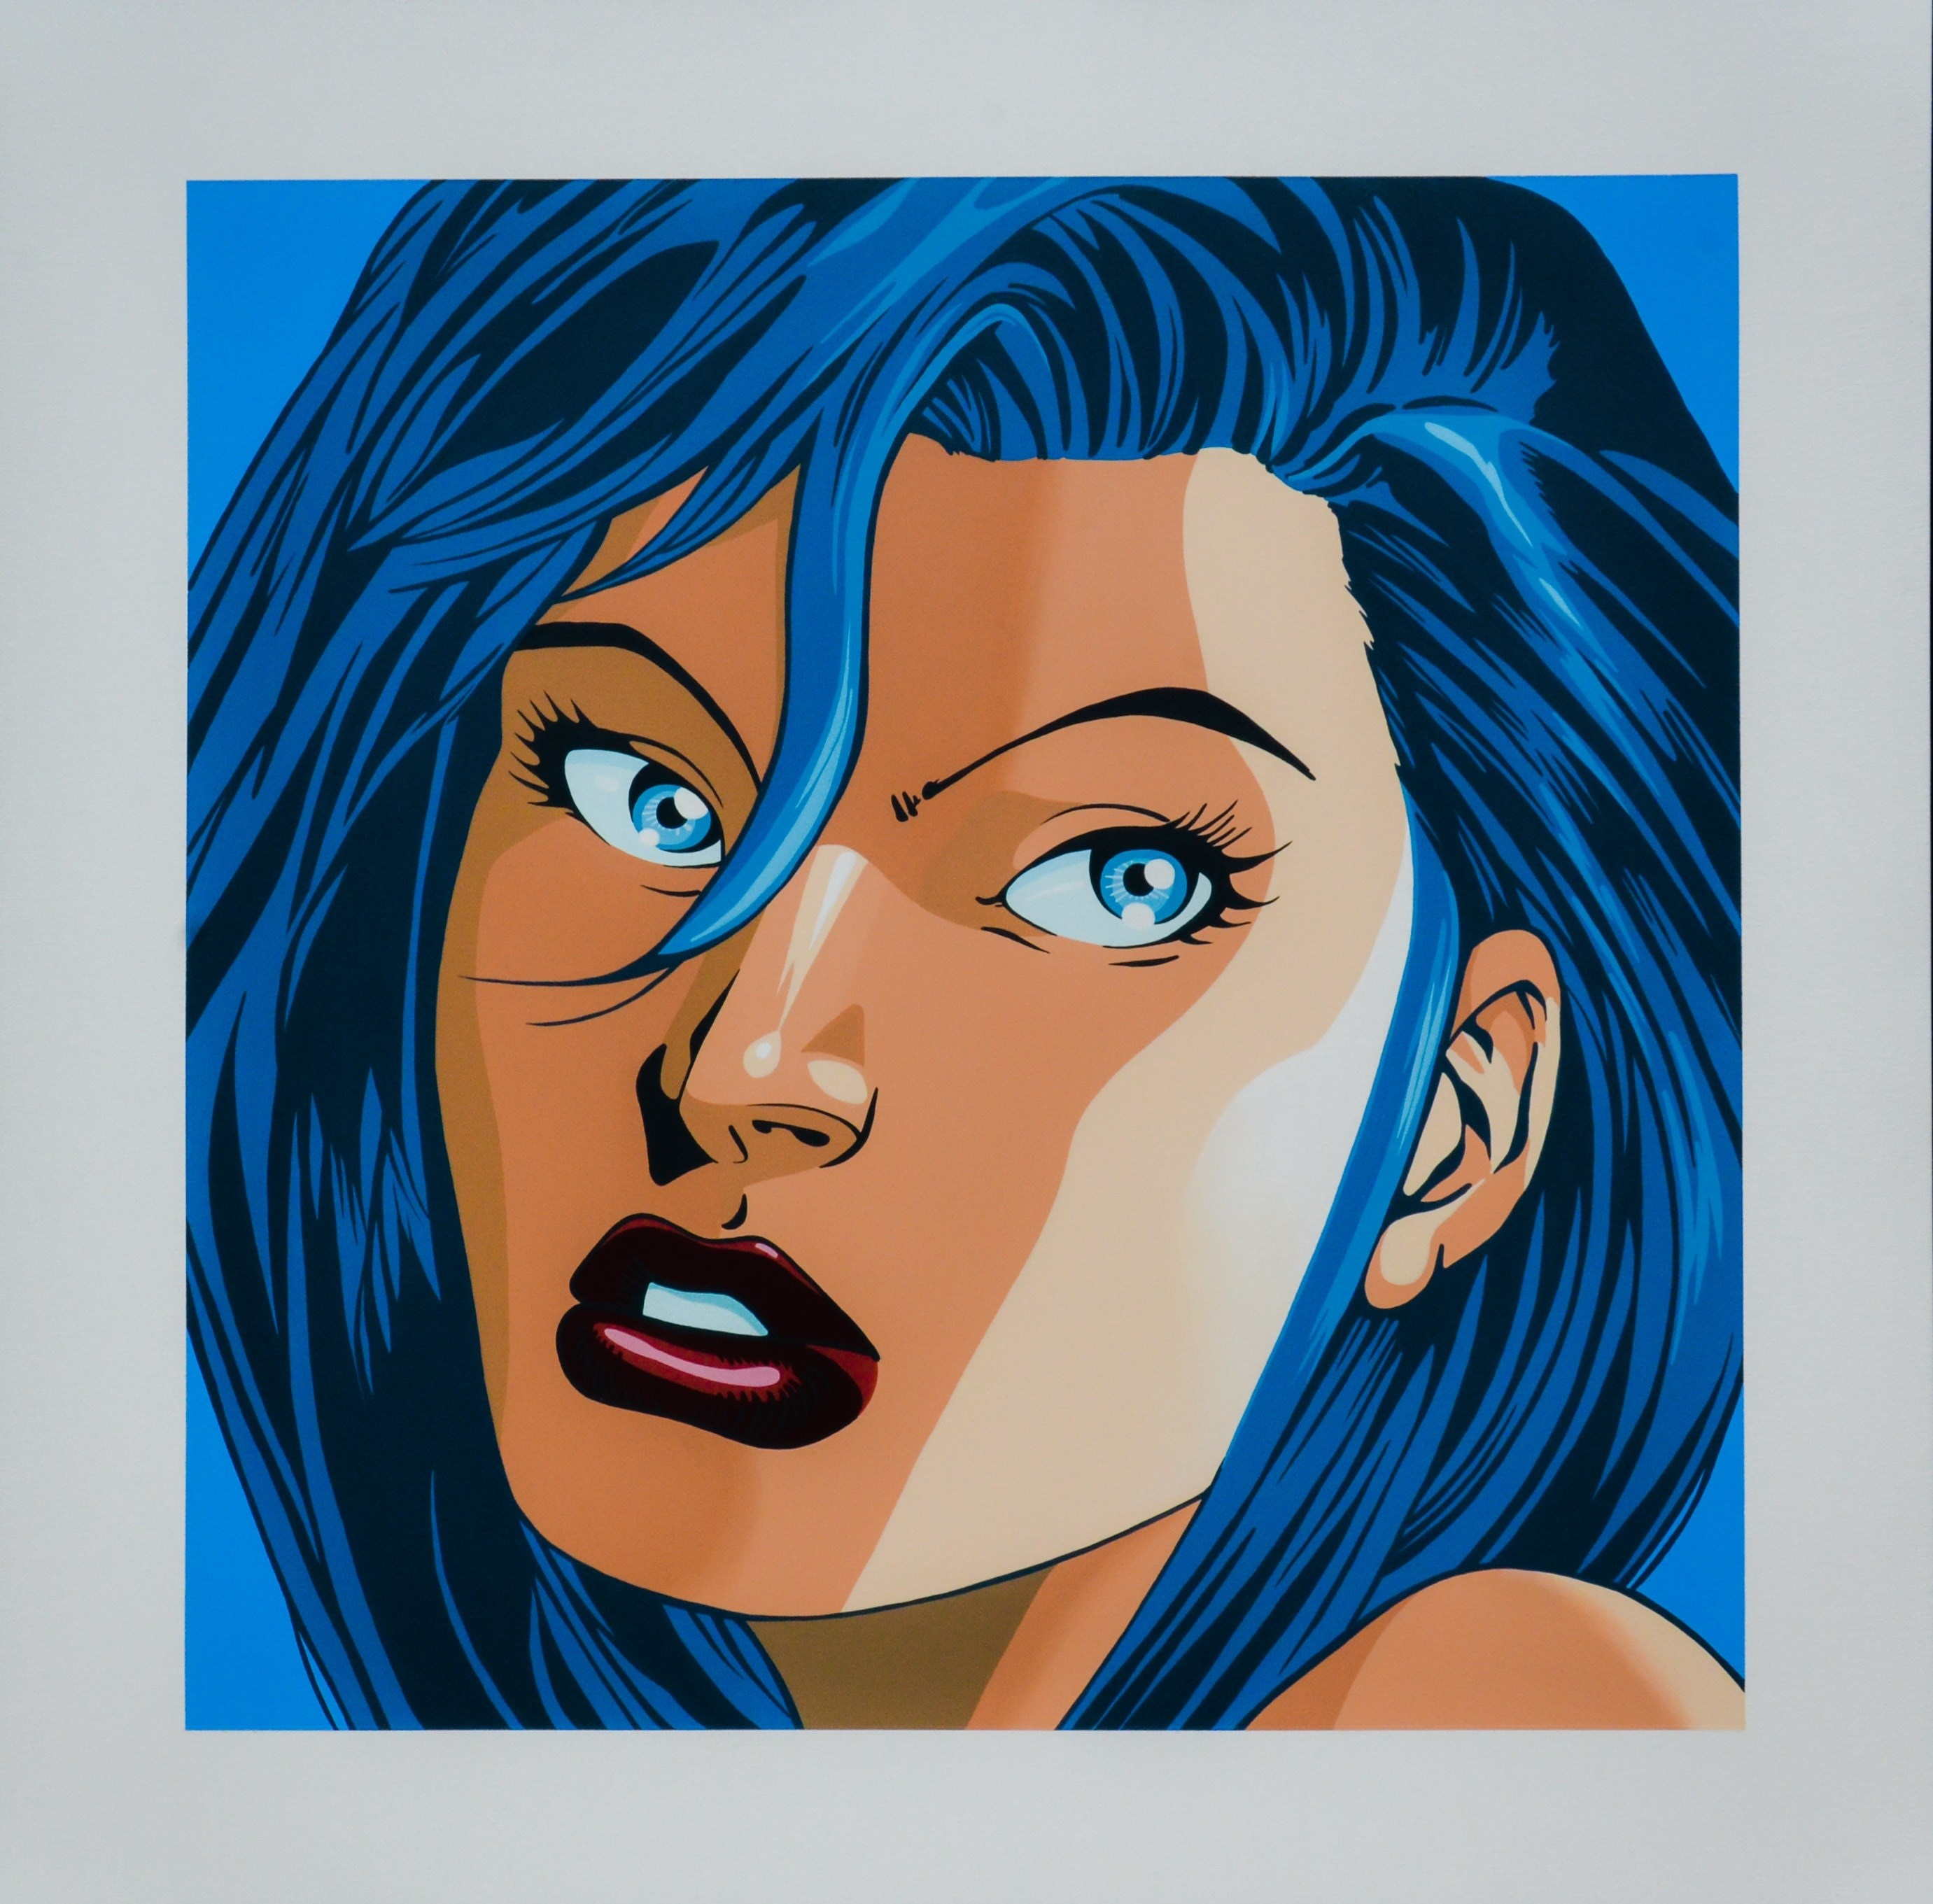 Blue Hair, original Avant-Garde Acrylic Painting by Nuno Raminhos